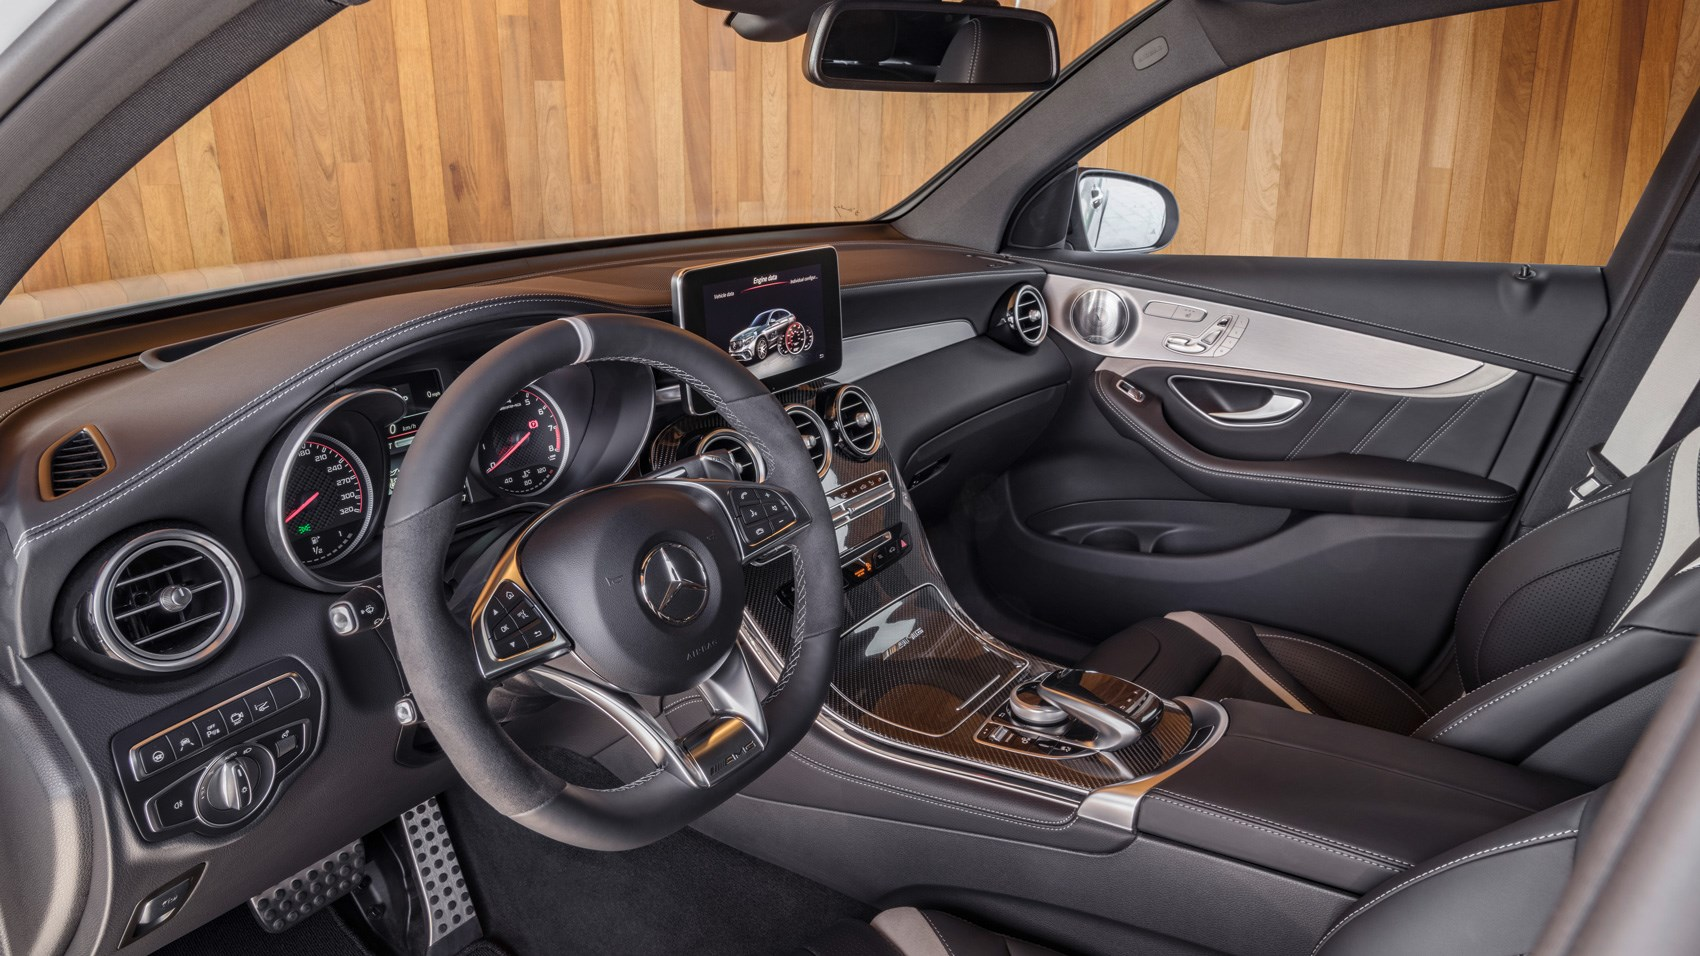 Mercedes-AMG GLC63 S 4Matic Coupe interior